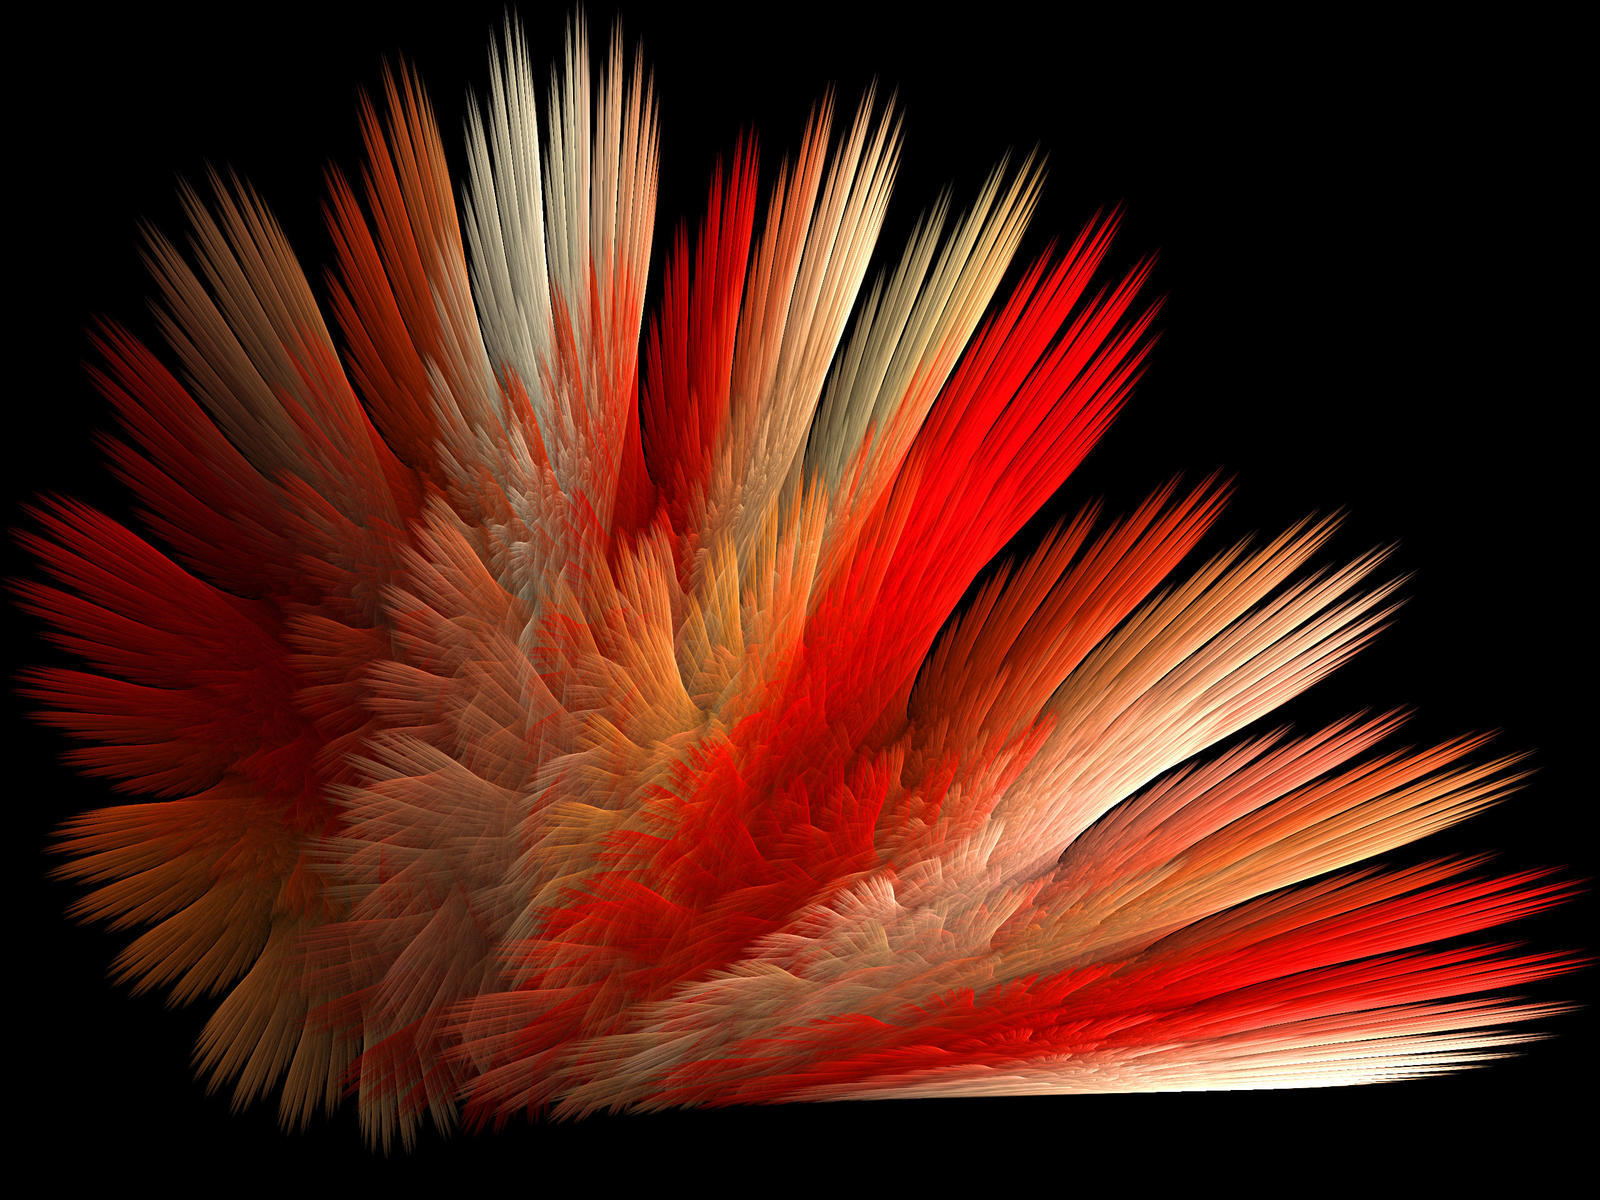 Feathery Fun by Doubleheader